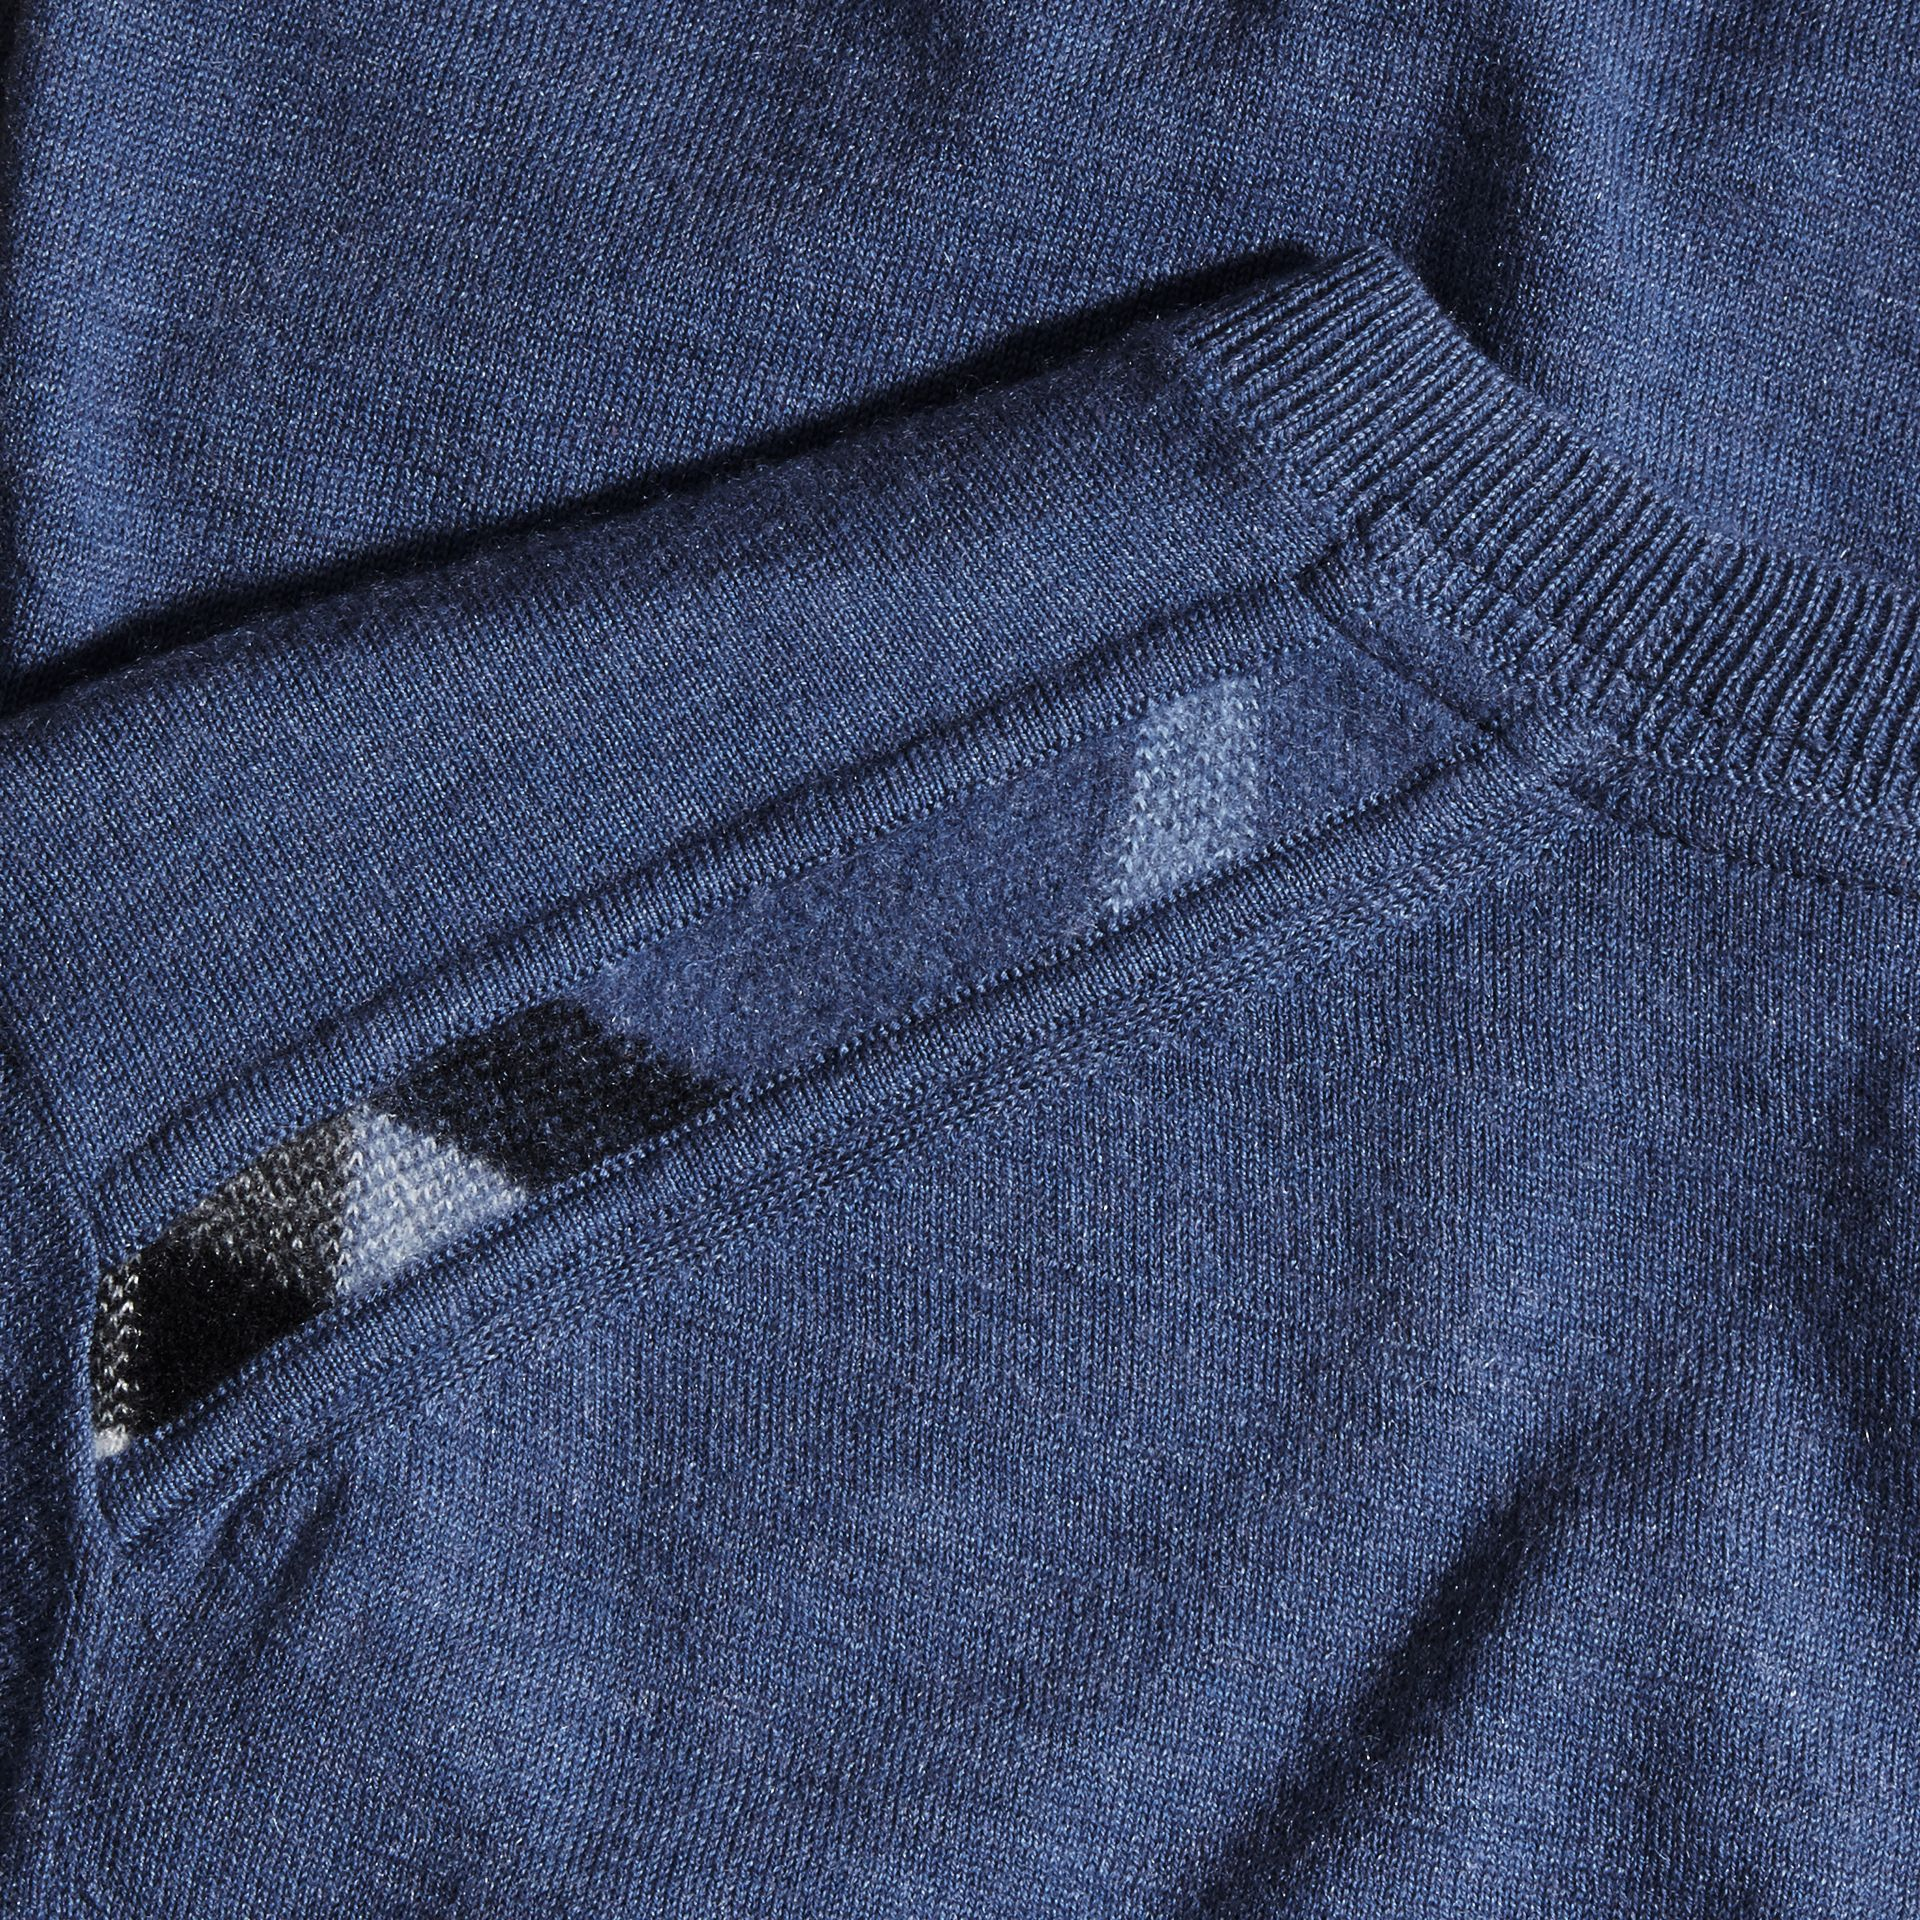 Check Jacquard Detail Cashmere Sweater in Dusty Blue - Men | Burberry United States - gallery image 1